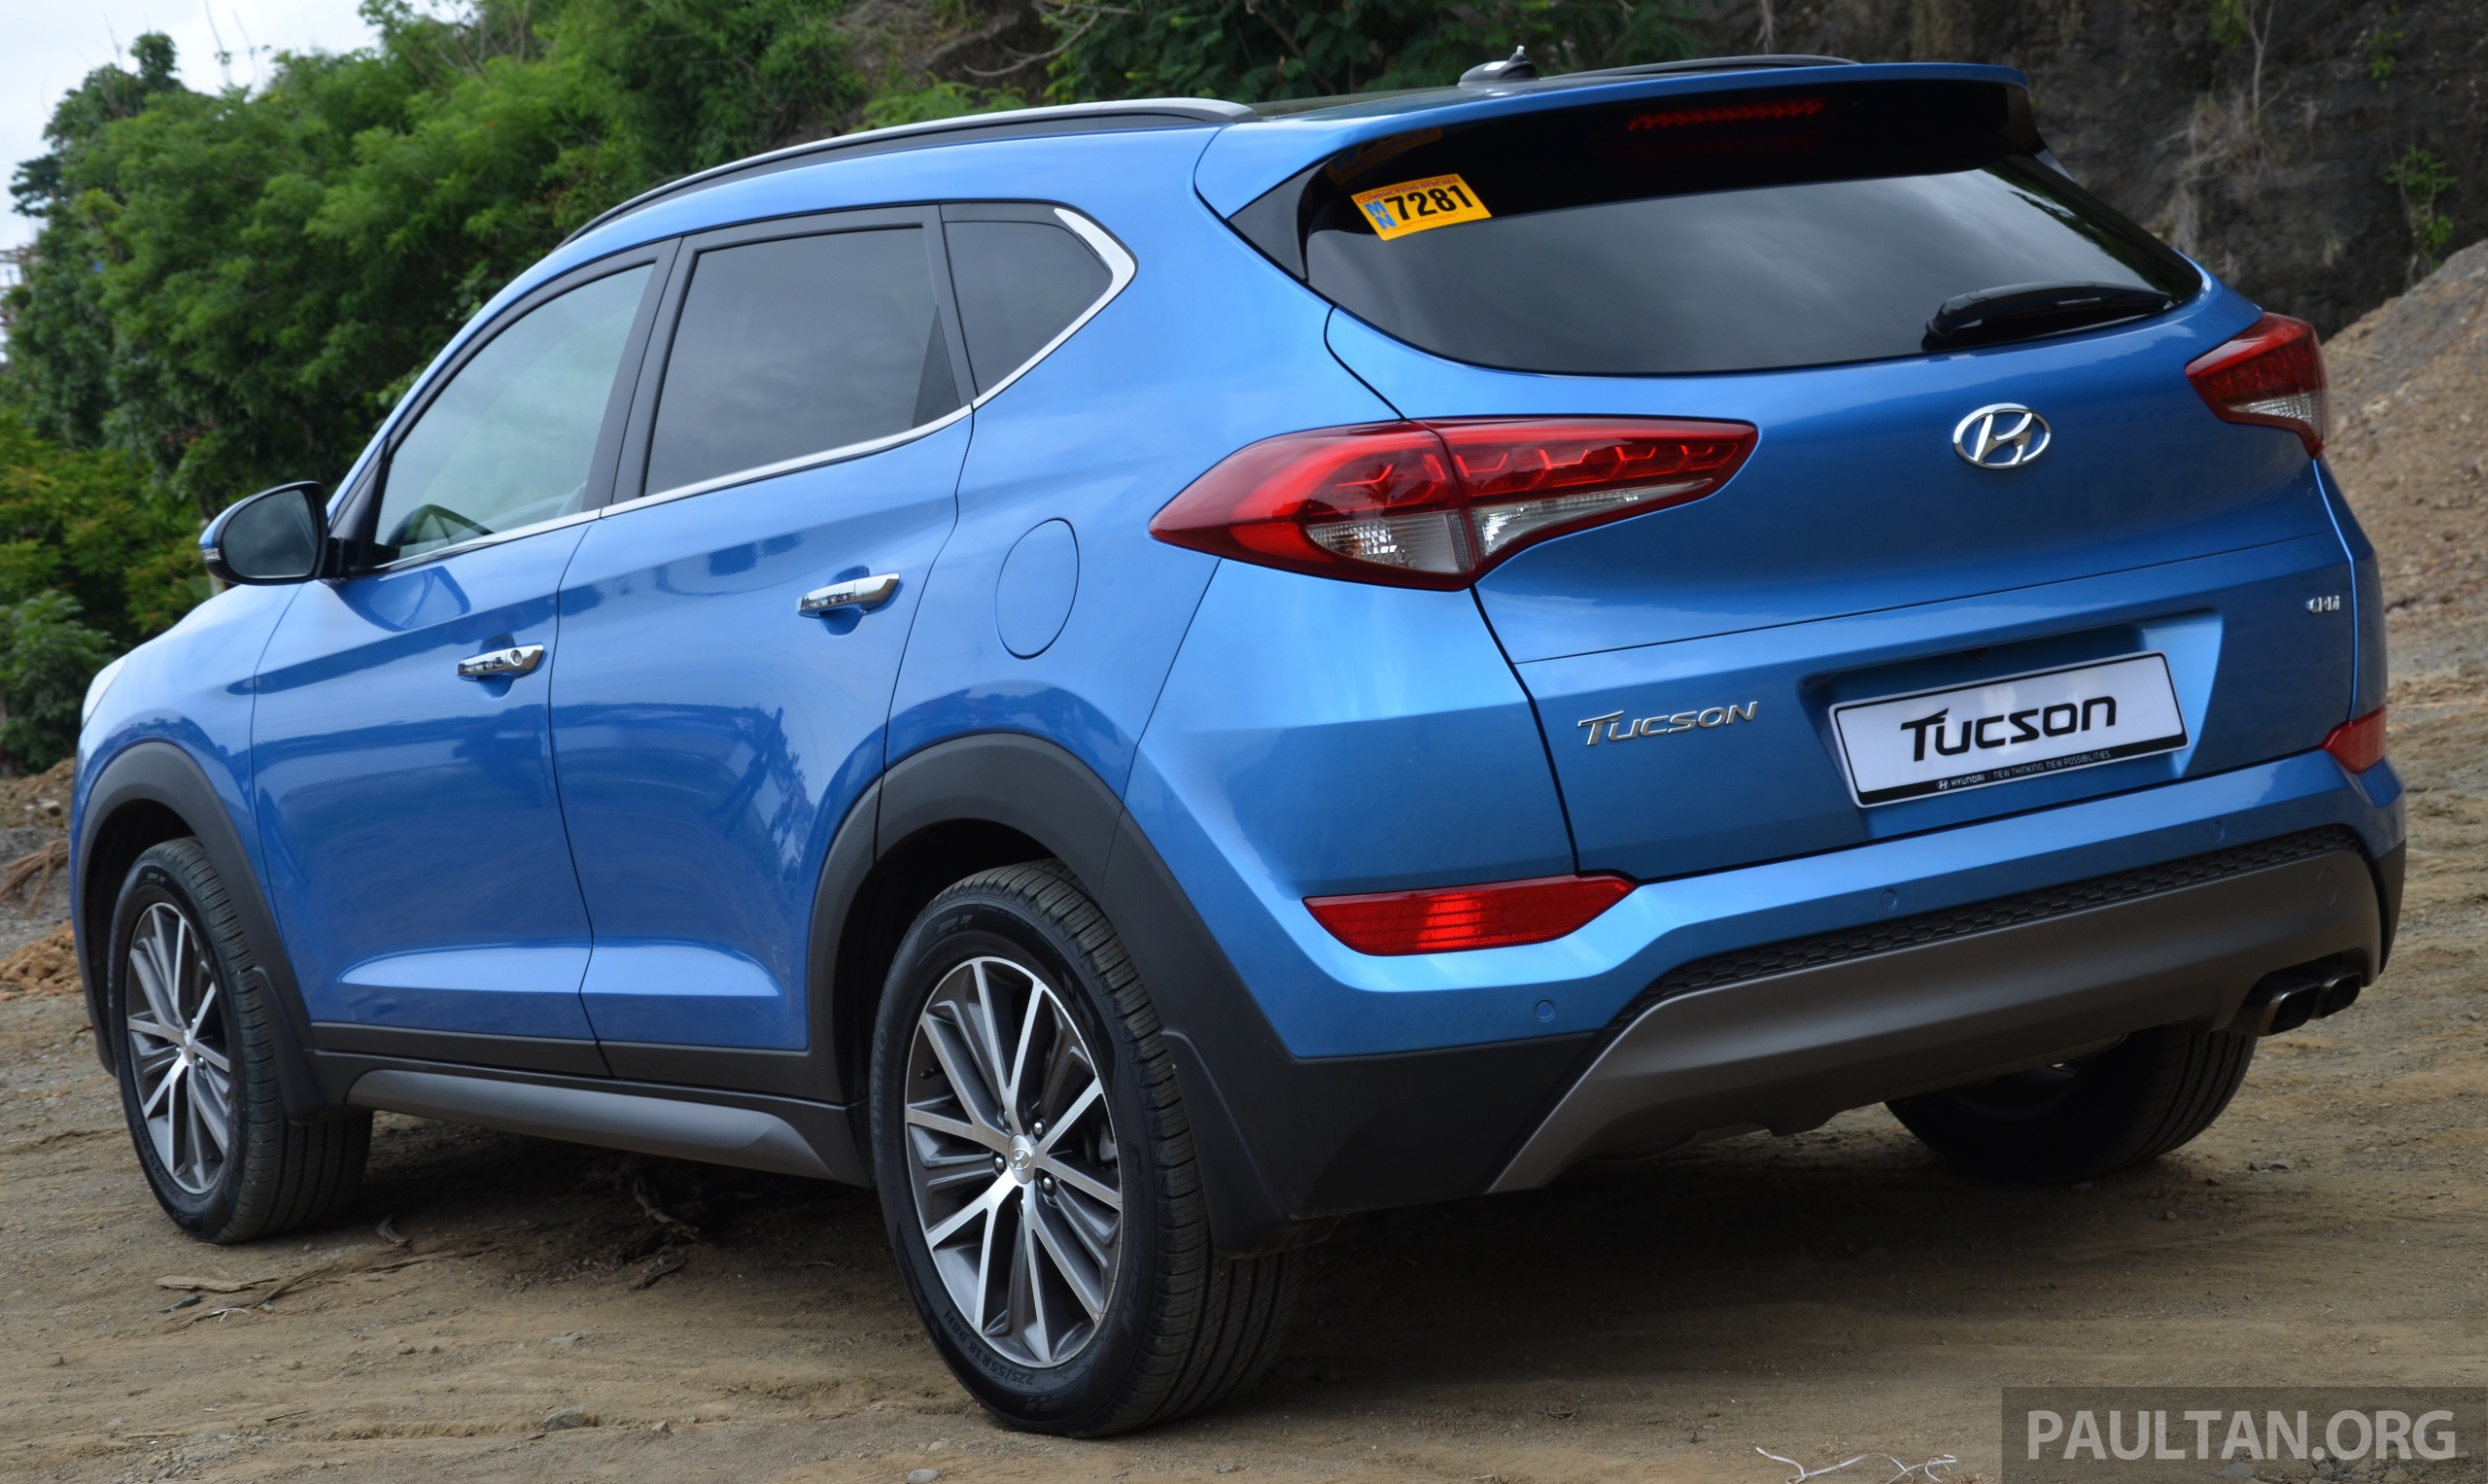 2016 Hyundai Tucson Price Philippines 2017 2018 Best